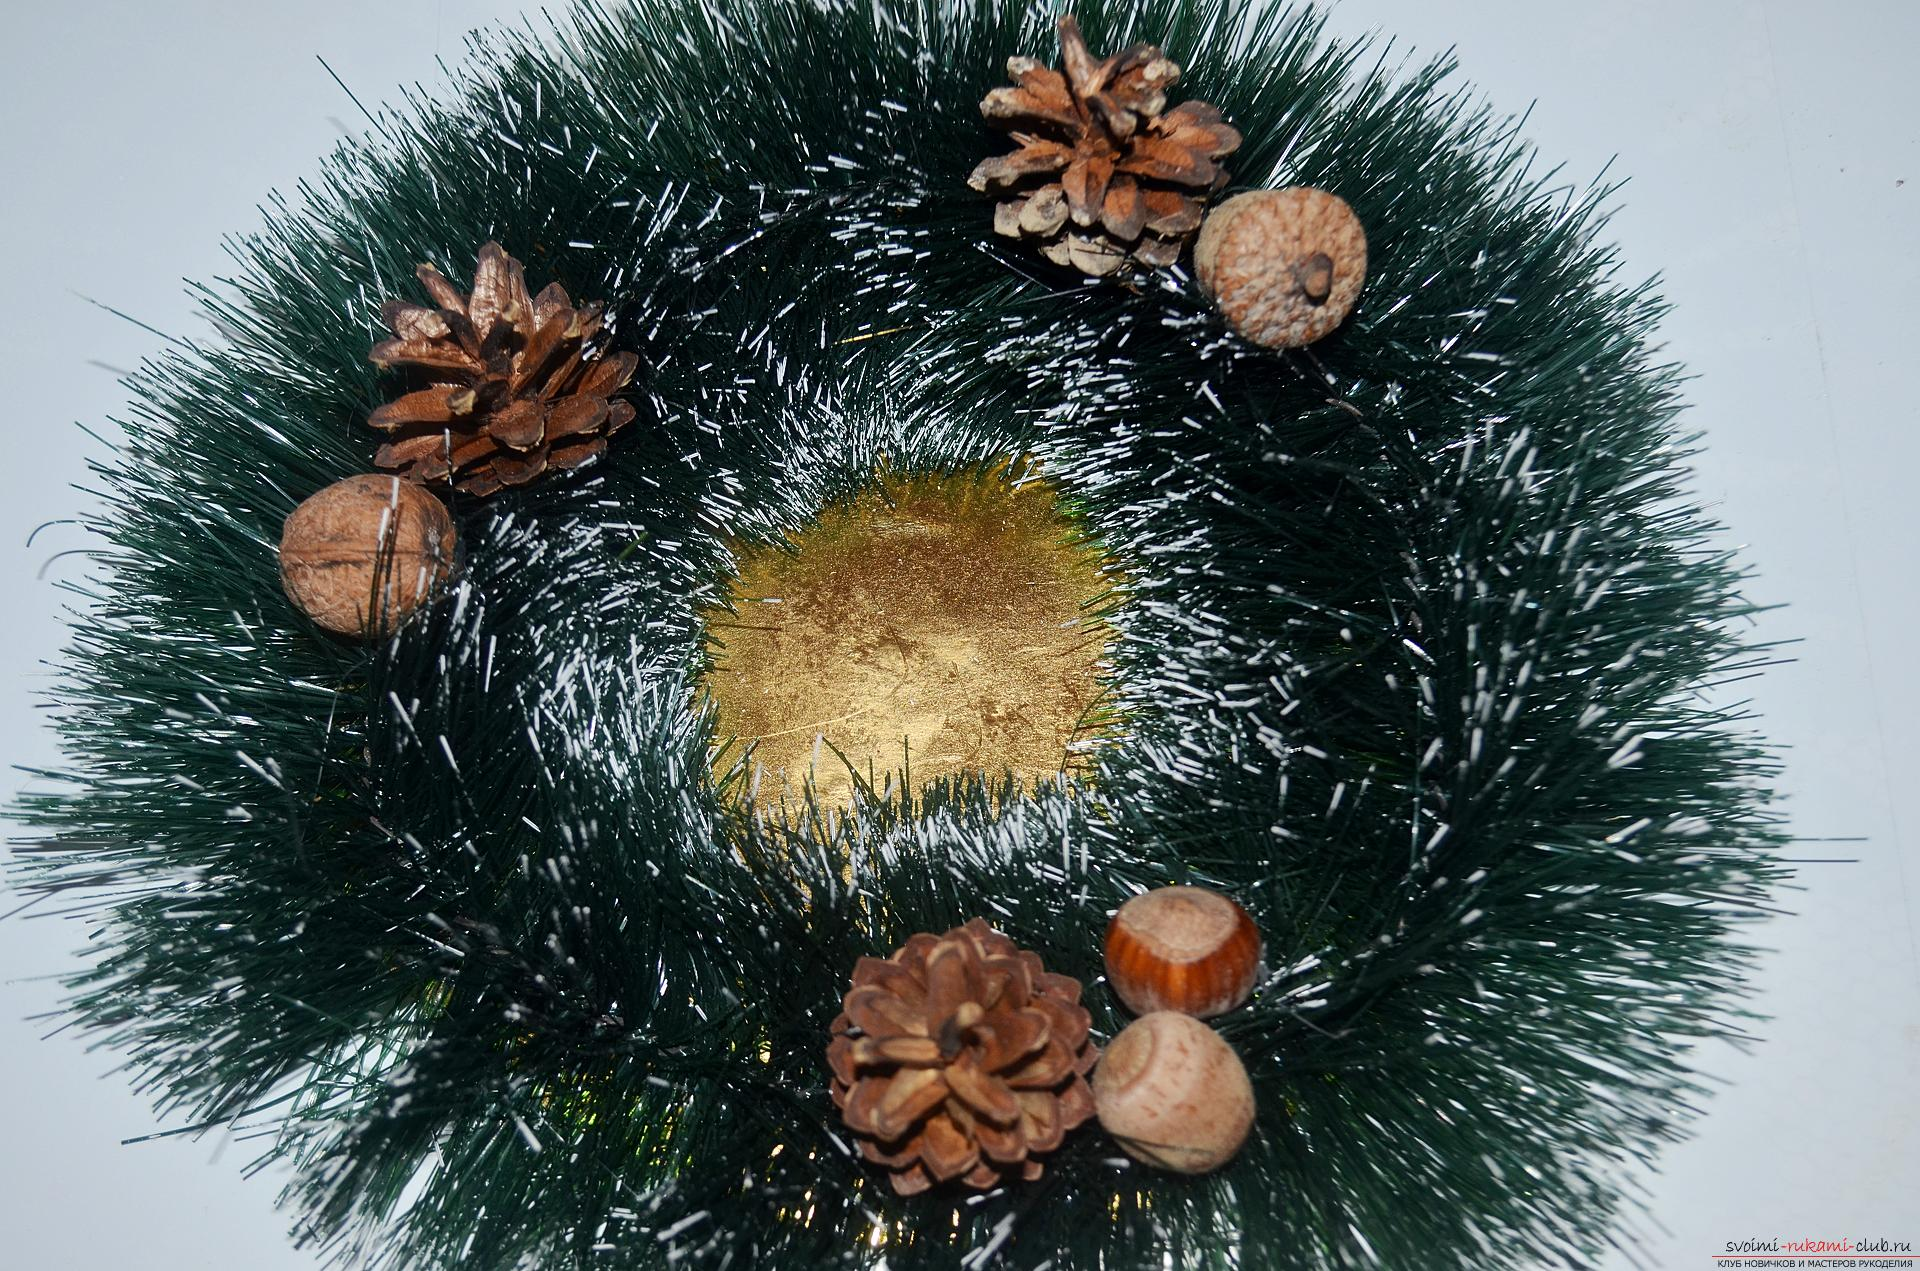 The master class will tell you how to make your own handiwork - a Christmas song with a candle. Photo №4